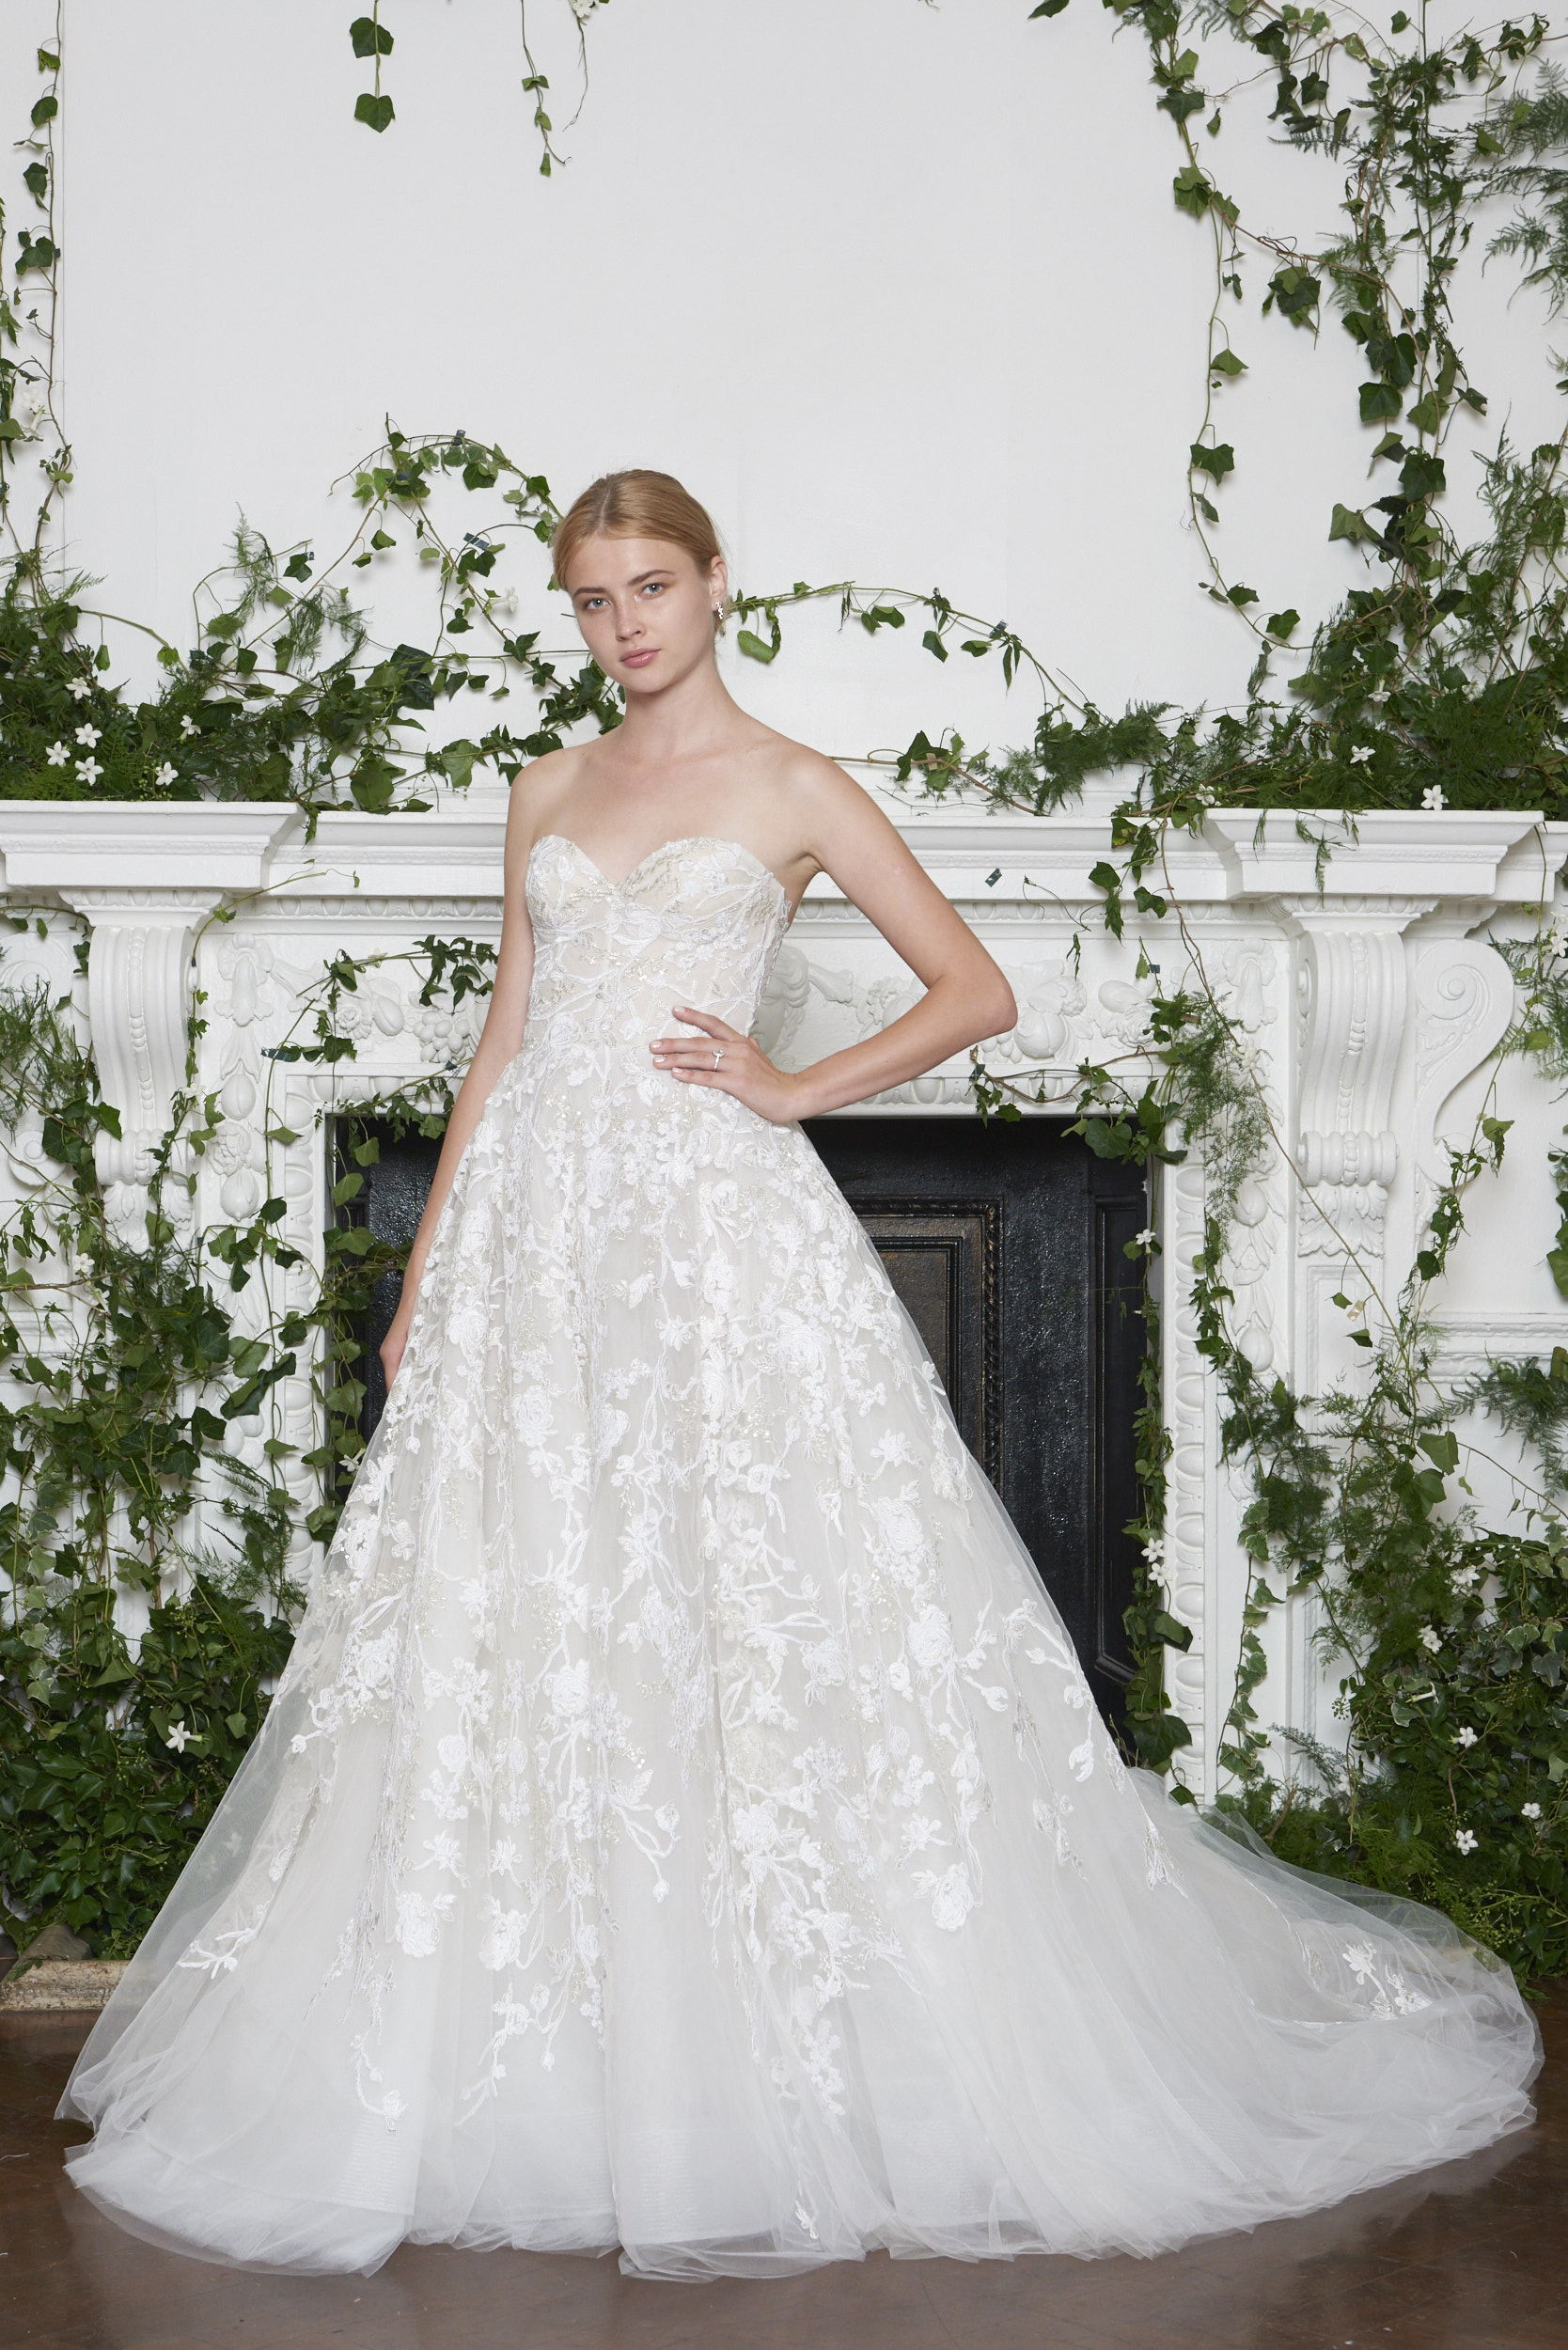 Monique Lhuillier Fall 2018 Strapless Ball Gown with Sweetheart Neckline